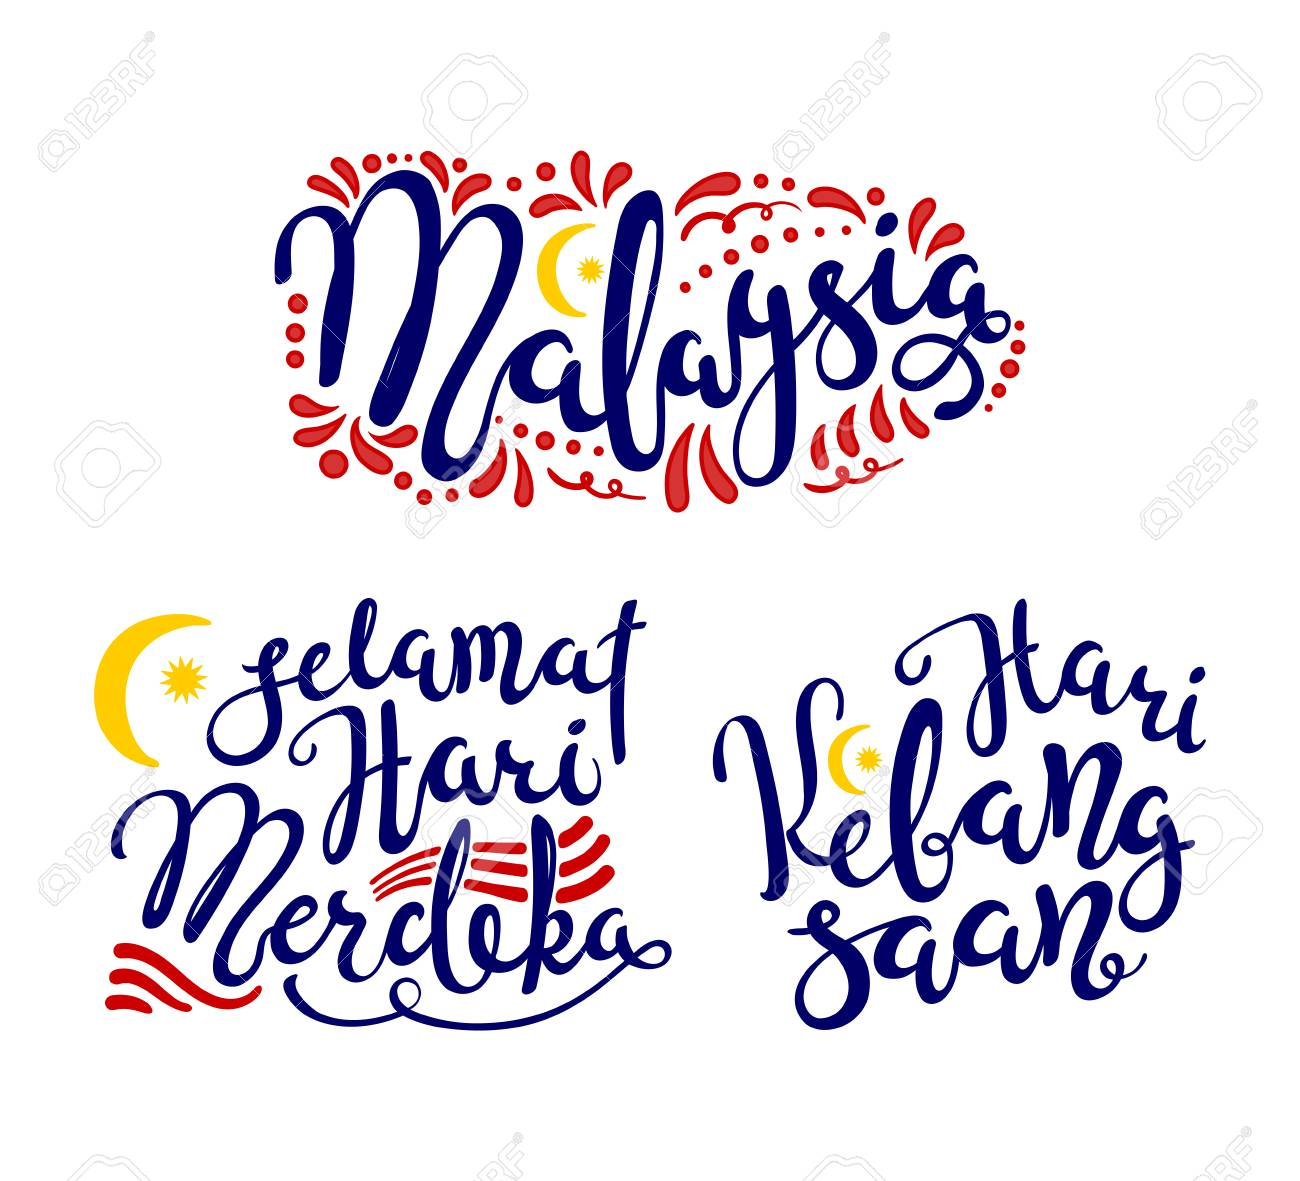 Set of hand written calligraphic lettering quotes for Independence Day in Malaysia. Isolated objects on white background. Vector illustration. Design concept for celebration. banner, greeting card. - 102934450